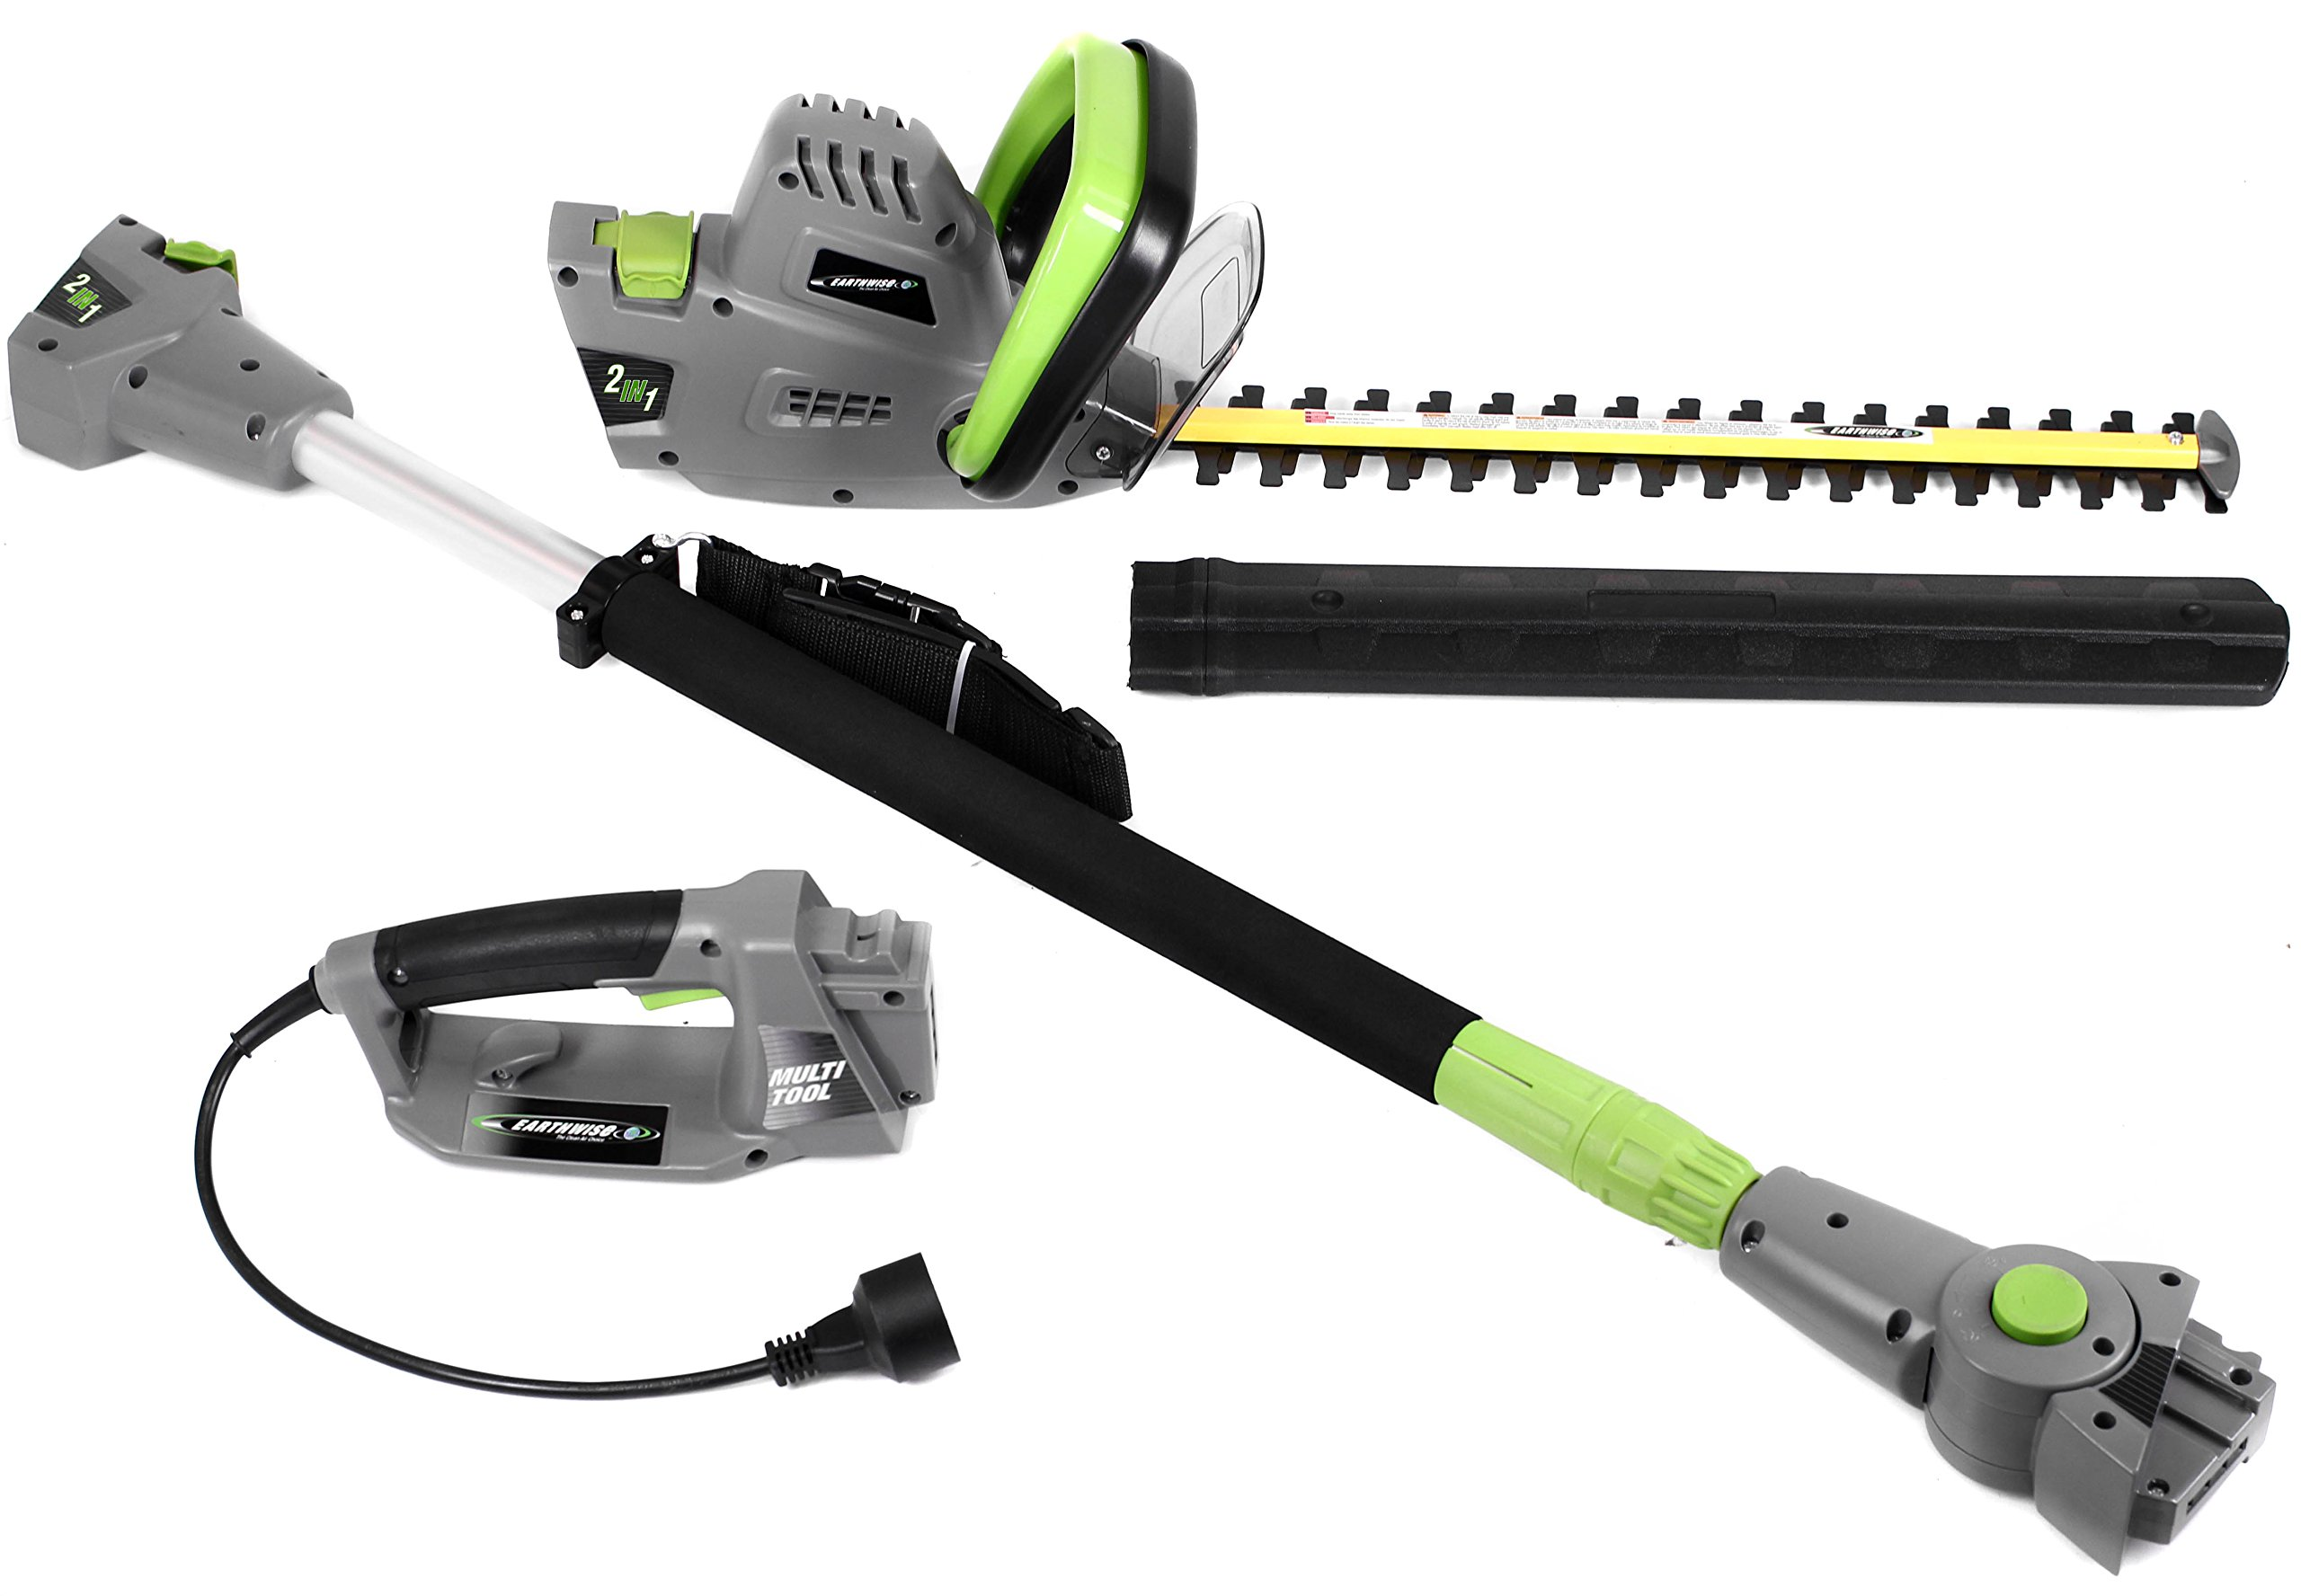 Earthwise 2-in-1 Convertible Pole Hedge Trimmer